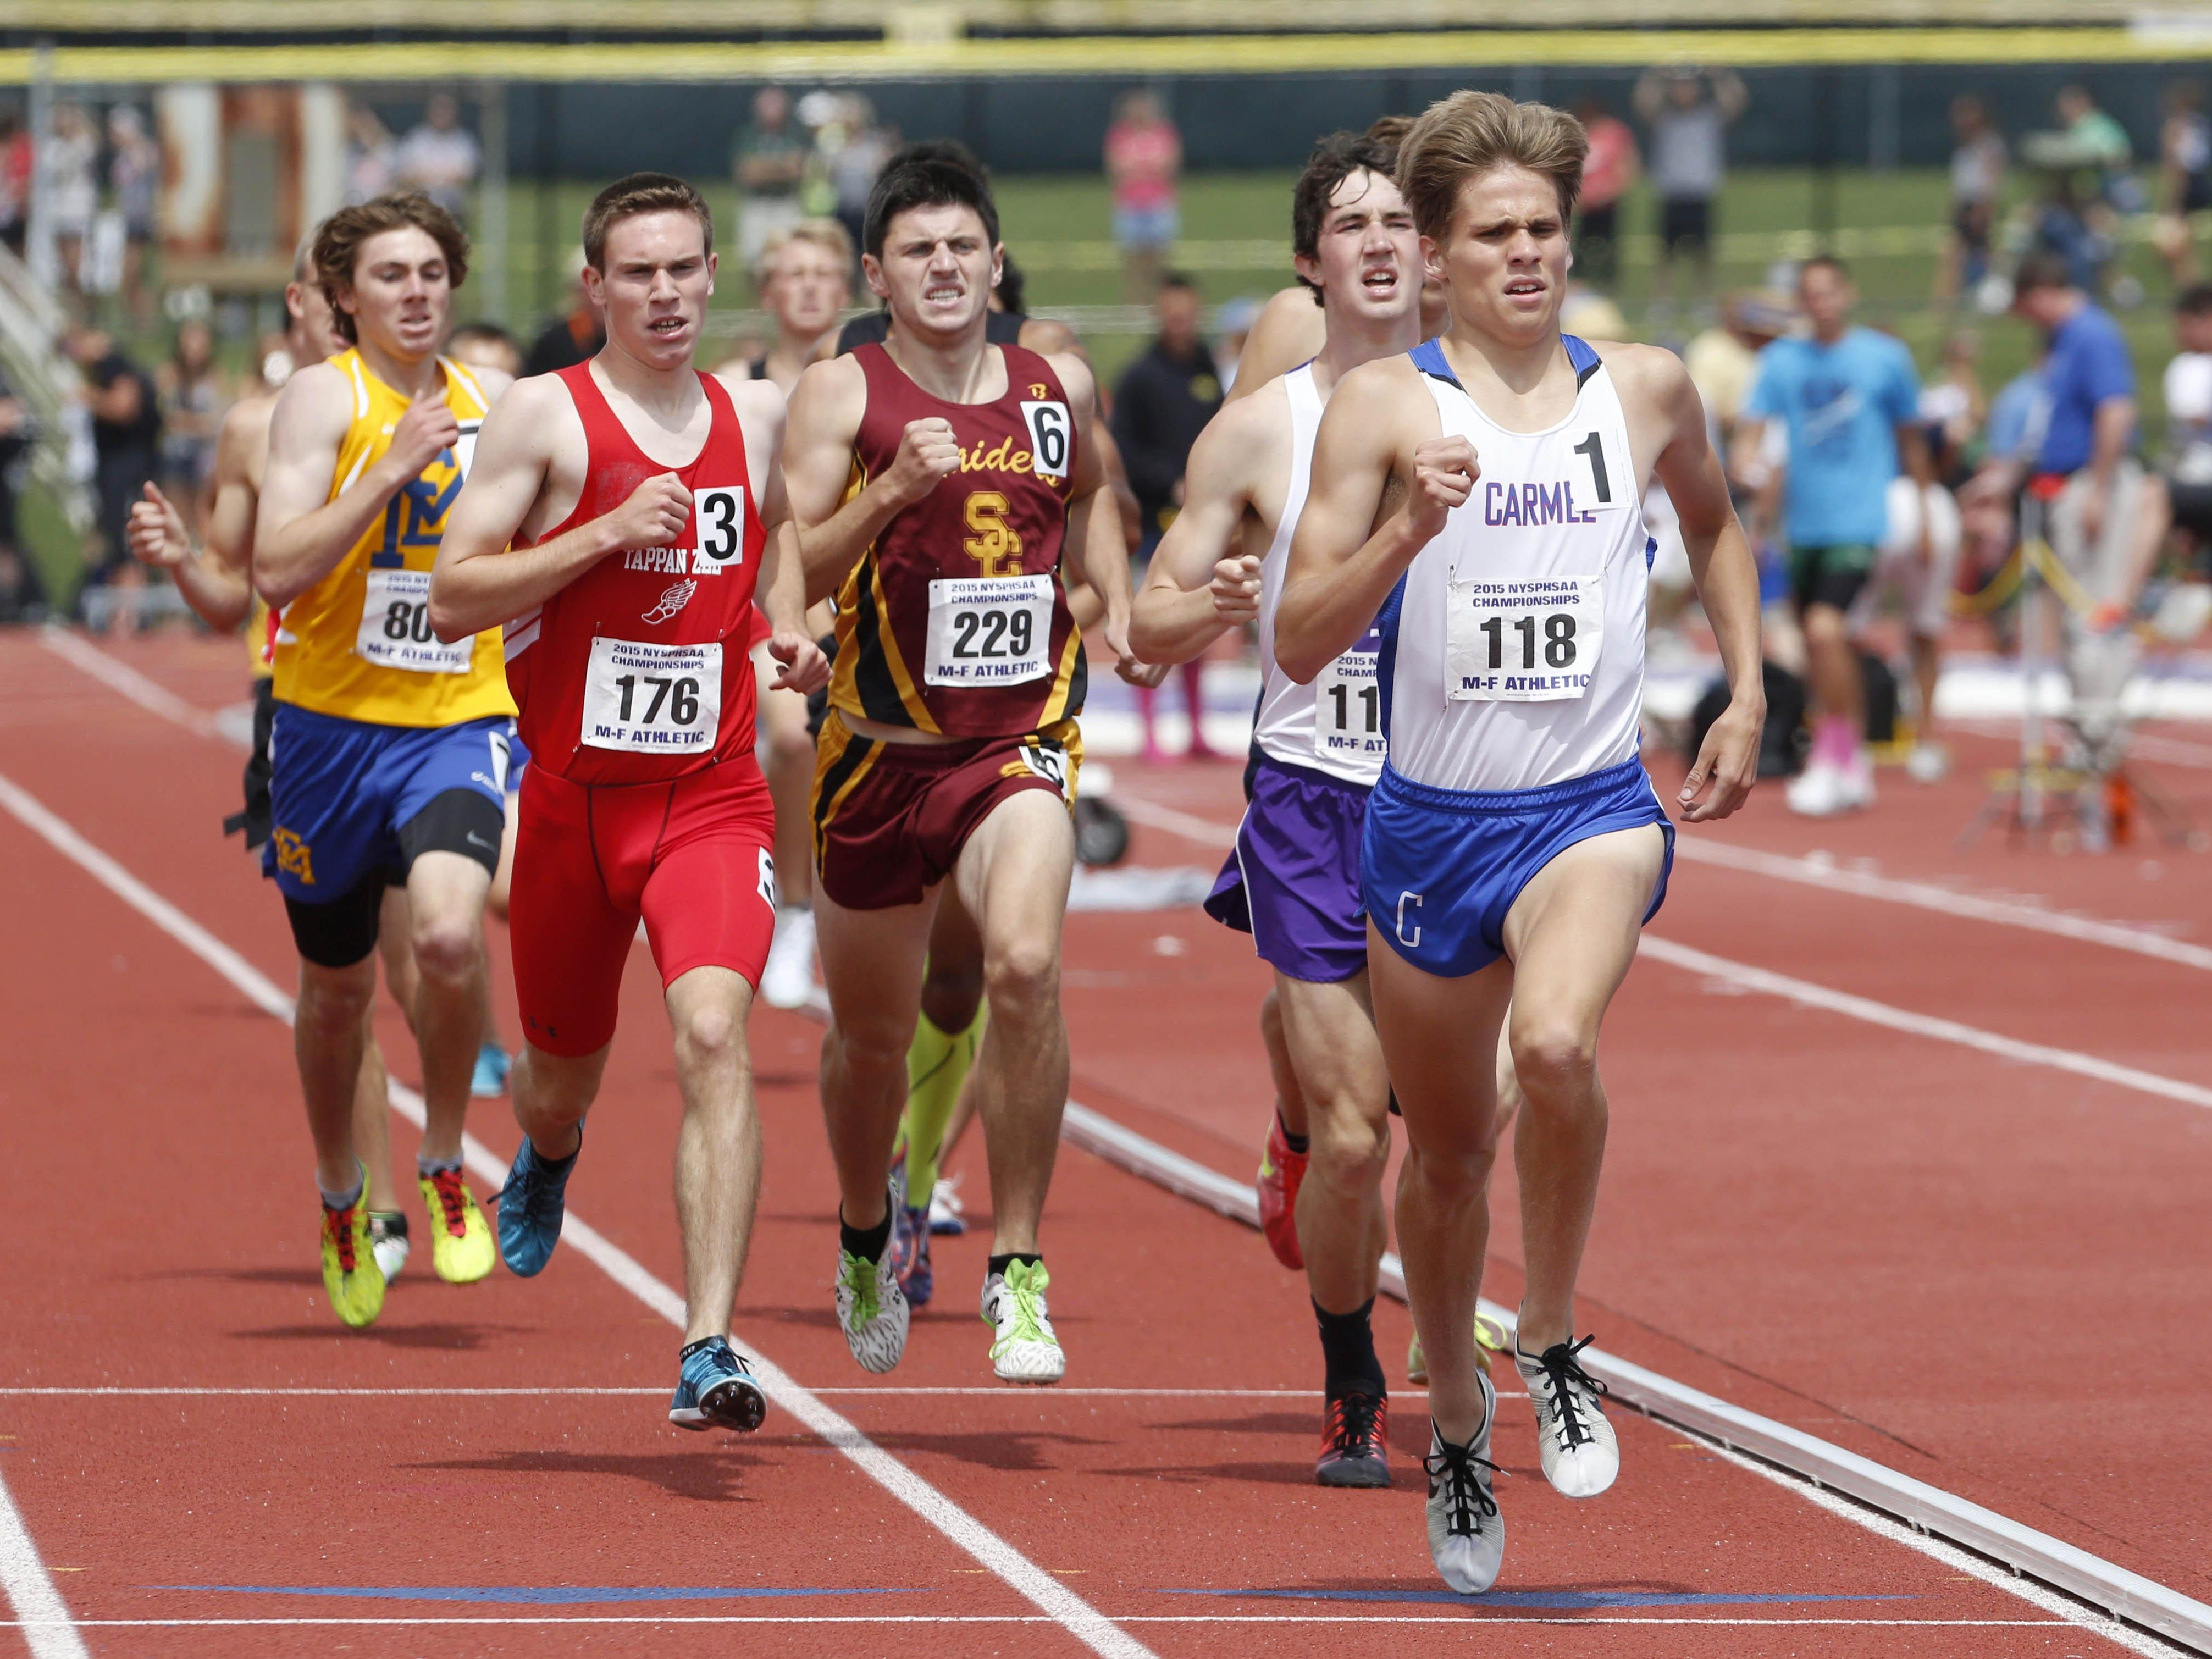 Tappan Zee's Luke Gavigan and Carmel's Benito Muniz competes in the 1600 meter run at the state track and field championships at the University at Albany, June 13, 2015.